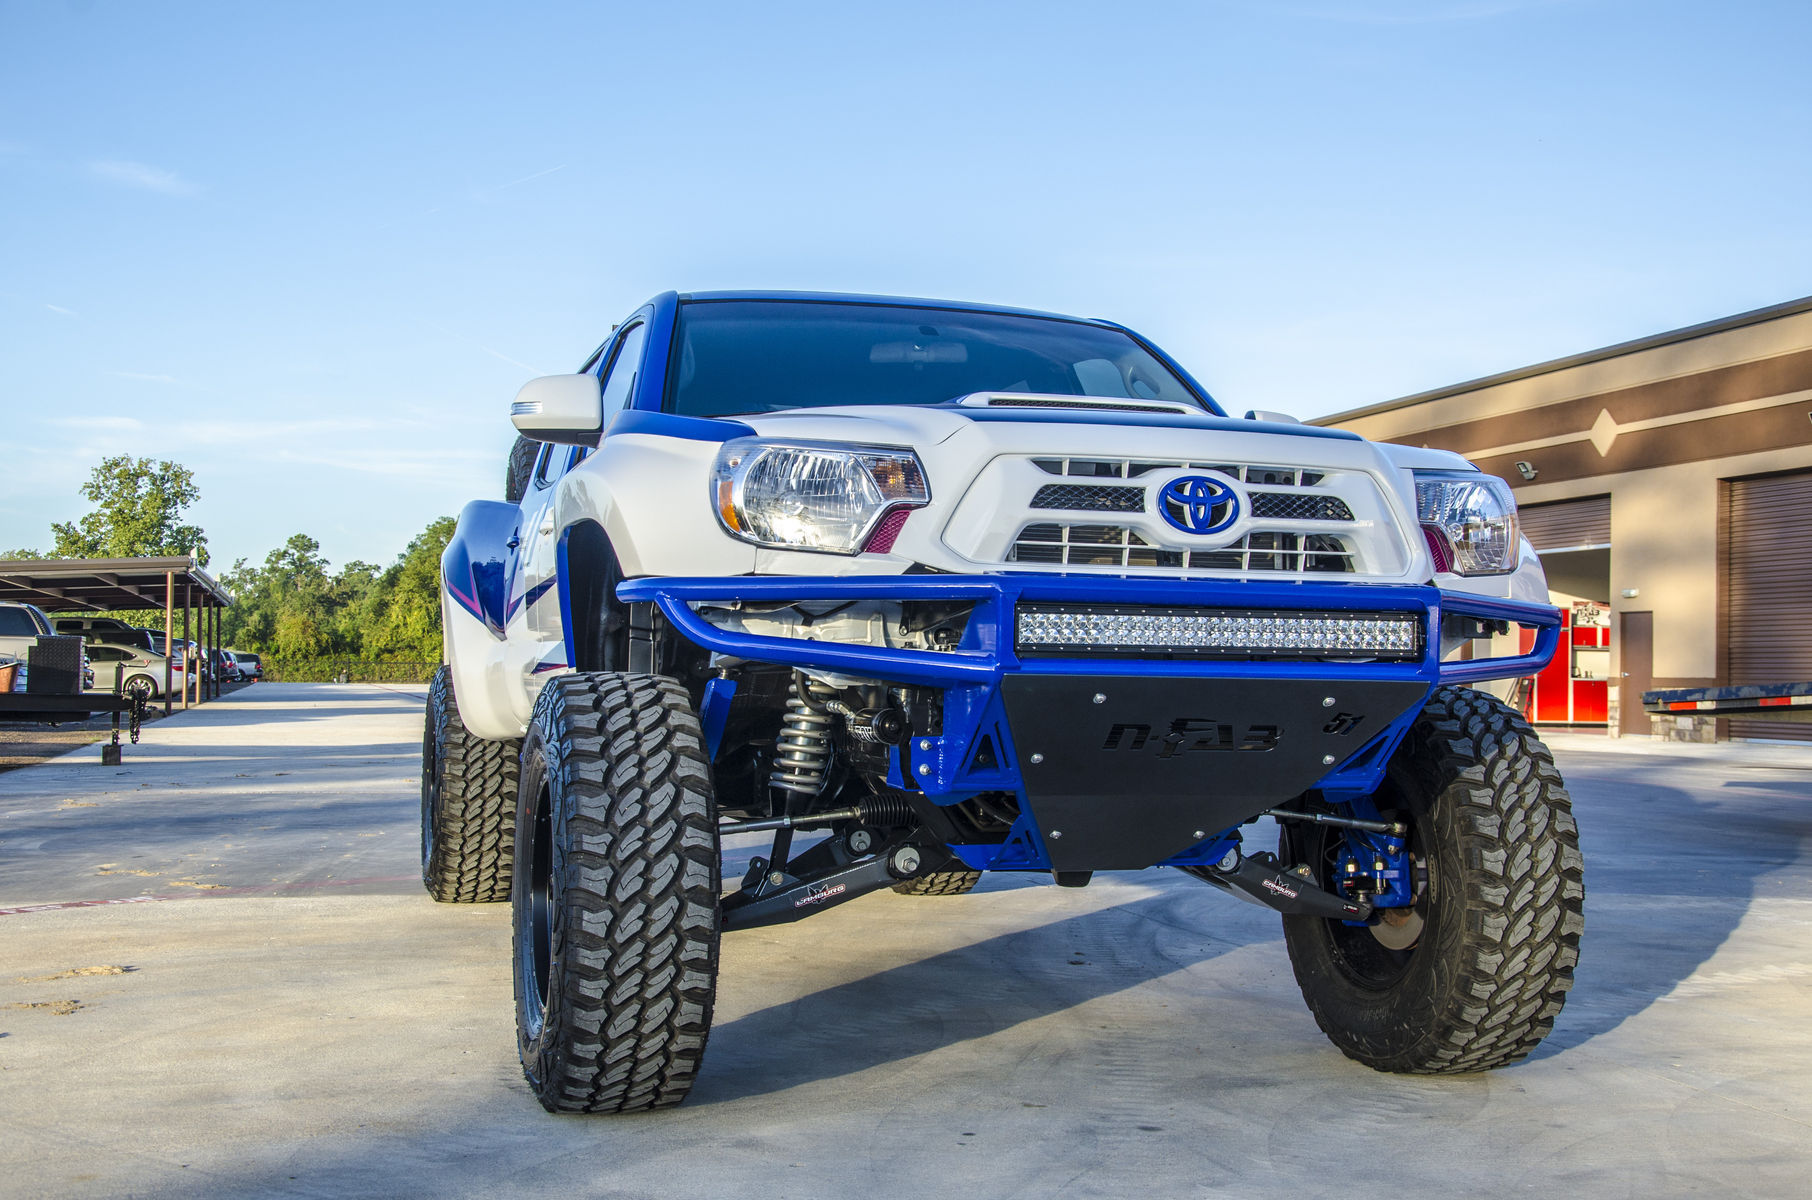 Toyota Tacoma | Justin Barcia's JGR Build - Offroad Ready